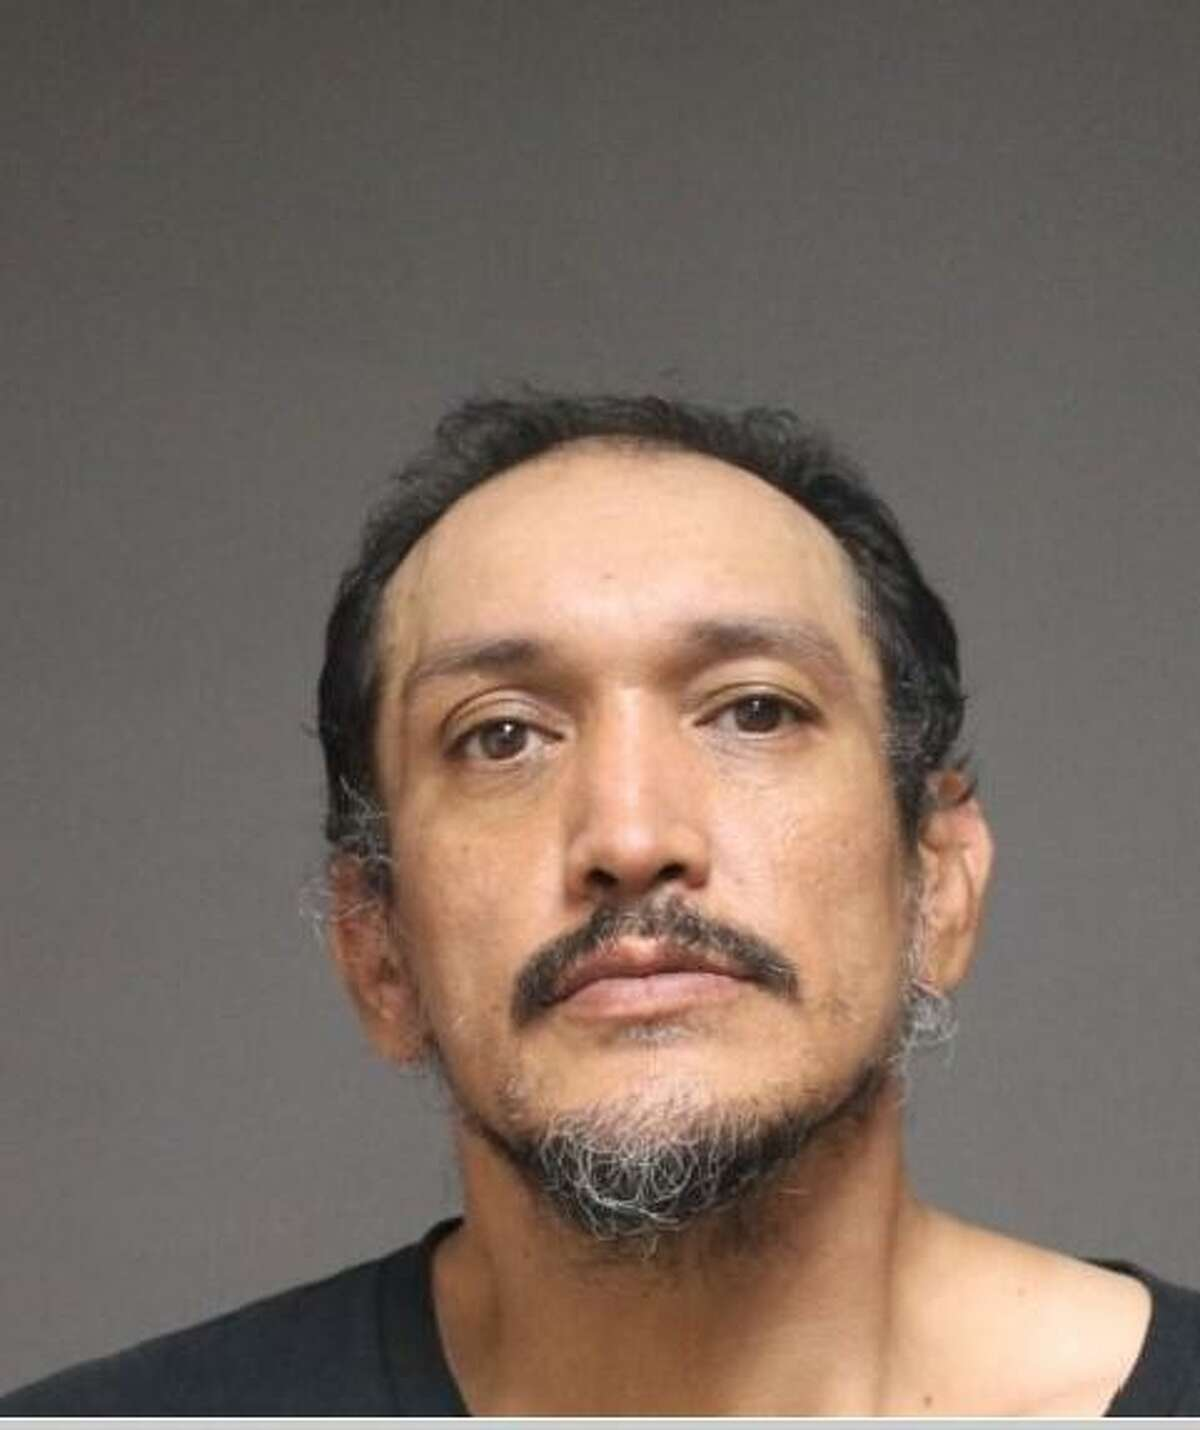 Robert Ford, a 46-year-old Bridgeport resident, was arrested and charged with third-degree burglary, credit card theft, illegal use of a credit card and sixth-degree larceny.